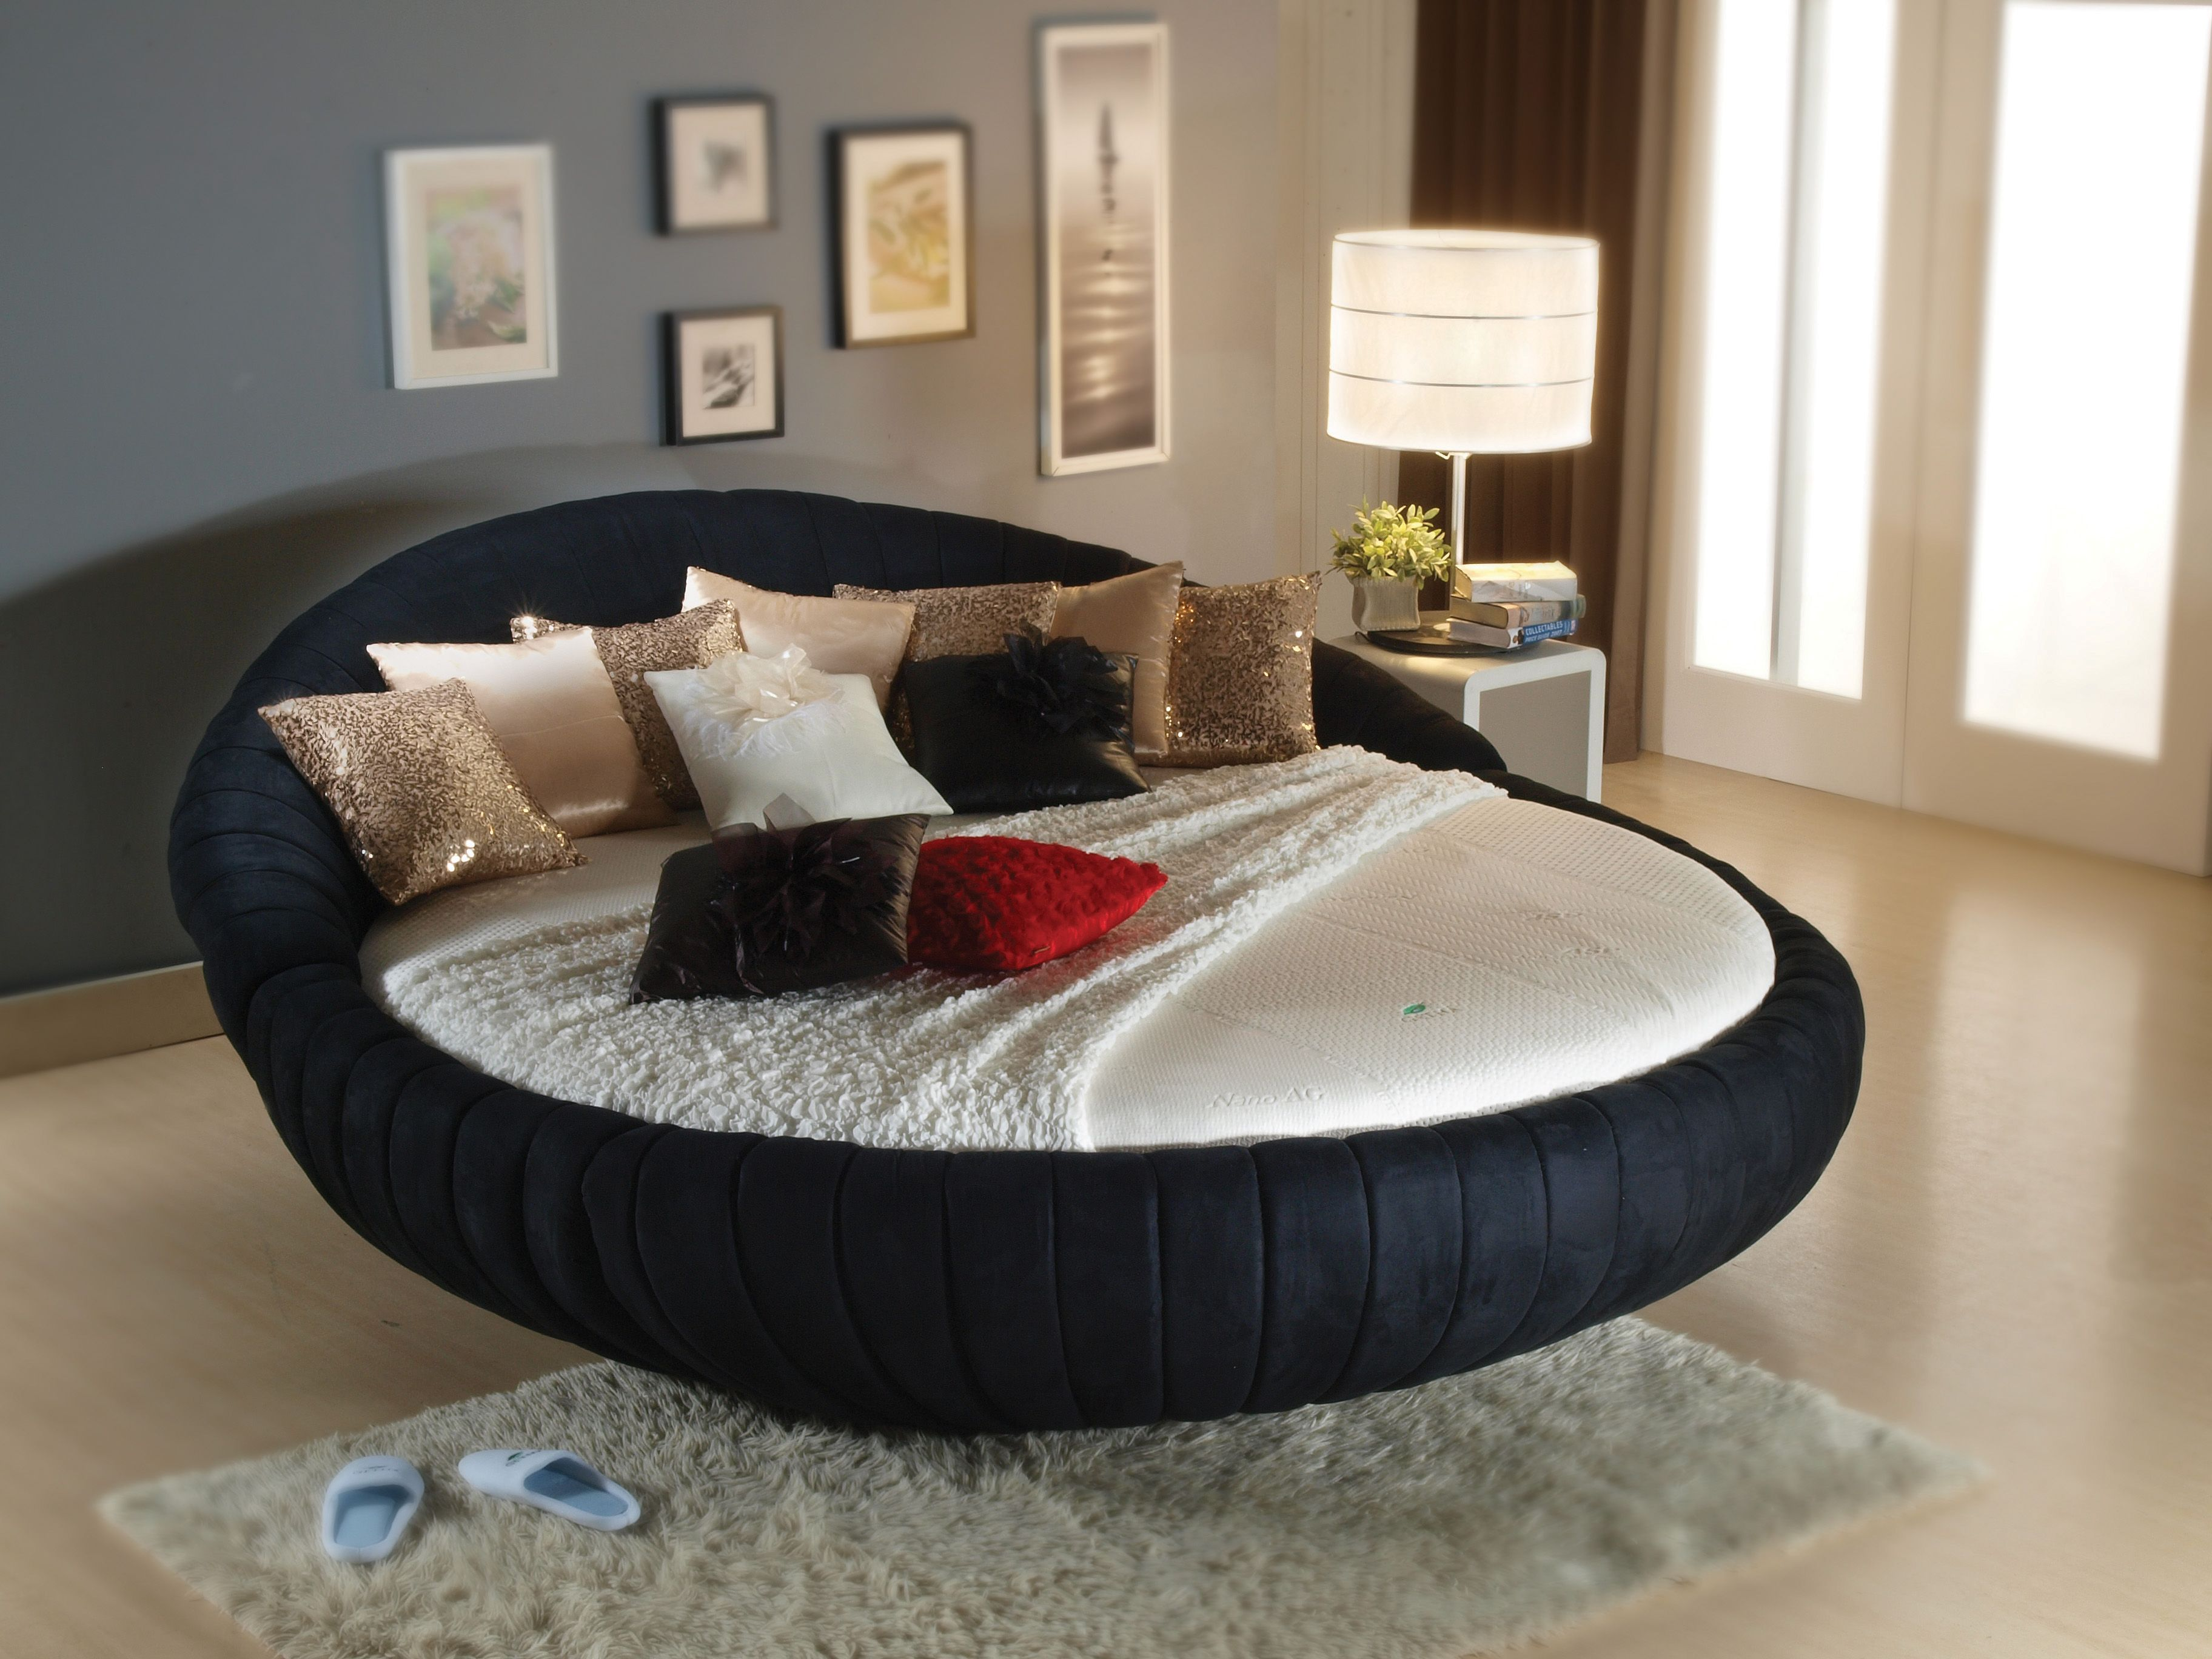 Round Beds Round Bed Getha Expo Hall 6 Booth D5 The Home Show 2015